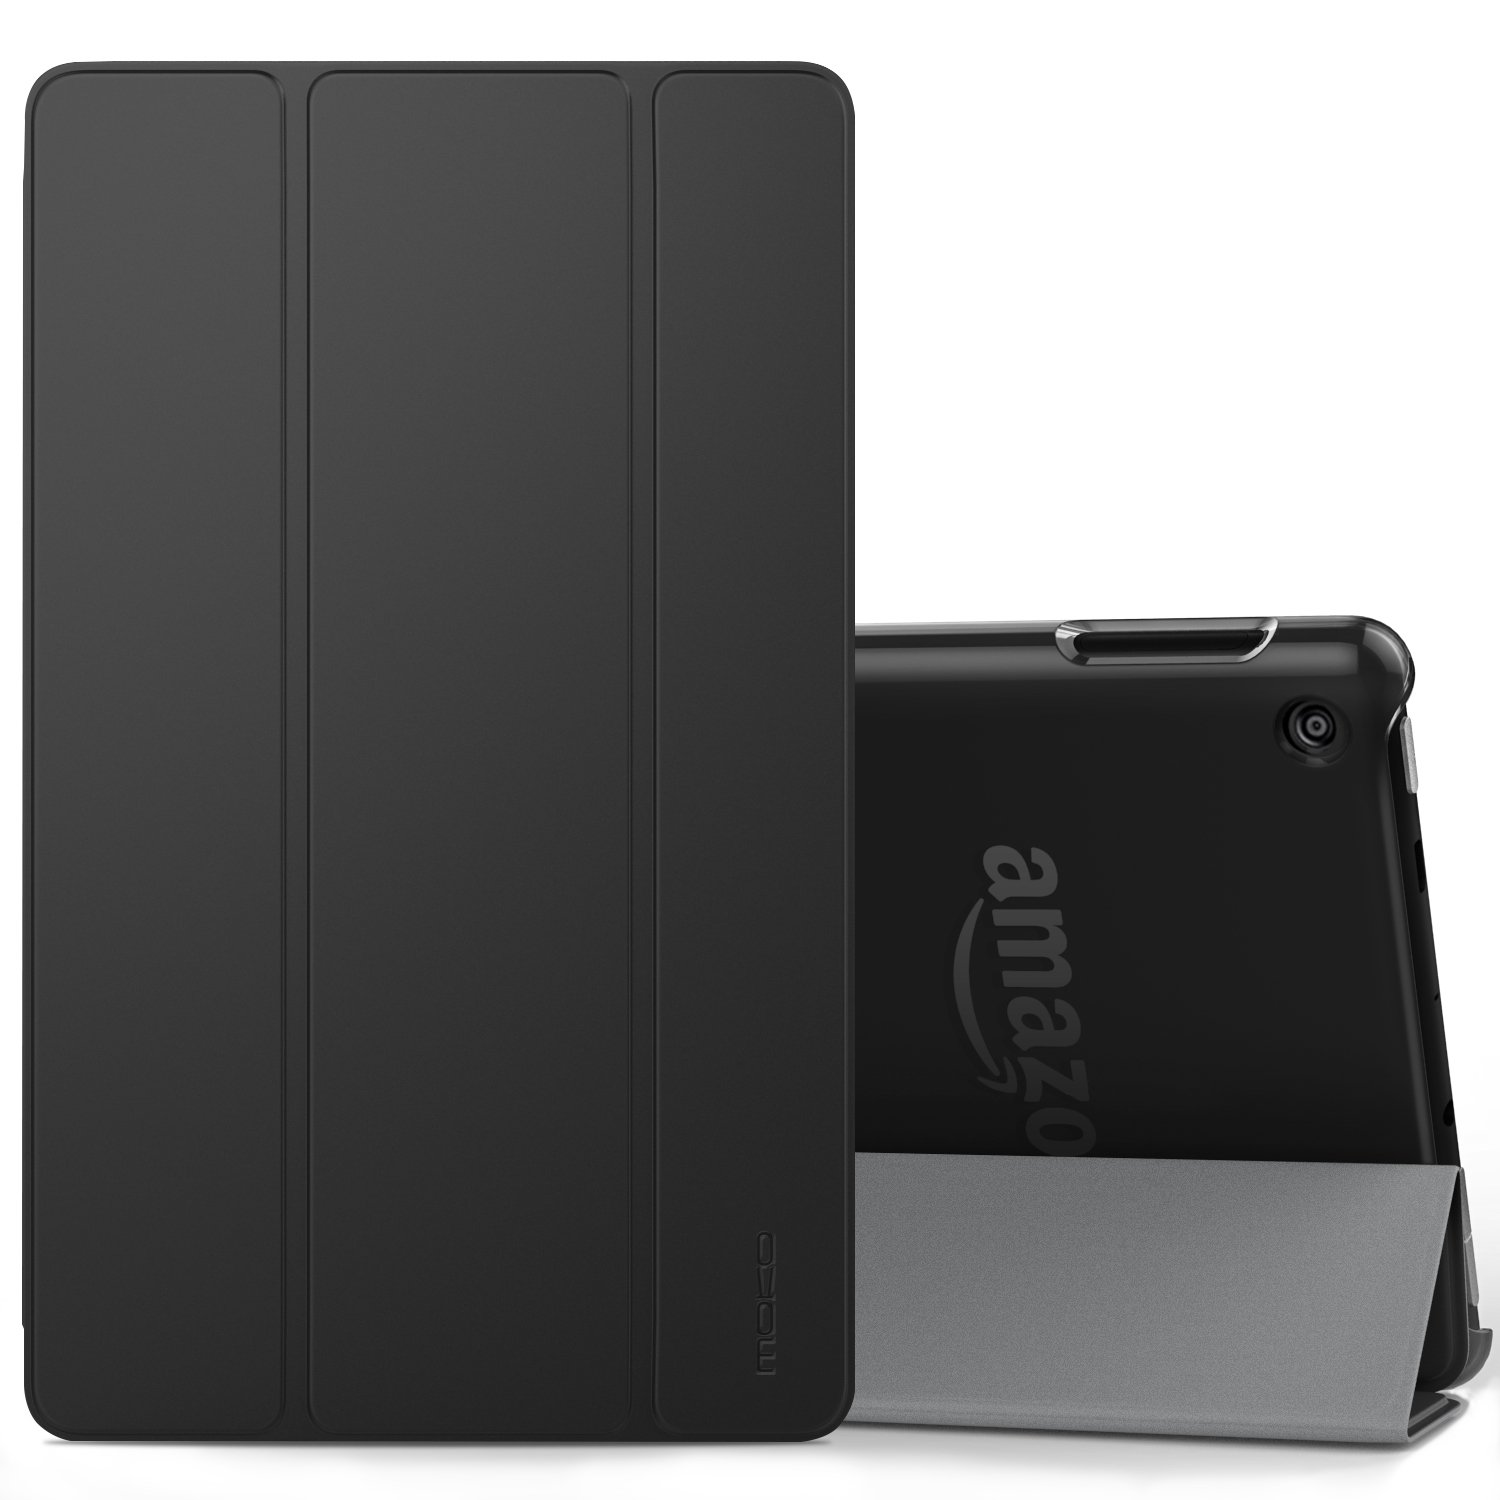 MoKo Case for All-New Amazon Fire 7 Tablet (7th Generation, 2017 Release Only) - Ultra Lightweight Slim Shell Stand Cover with Frosted Back for Fire 7, Black (with Auto Wake/Sleep)